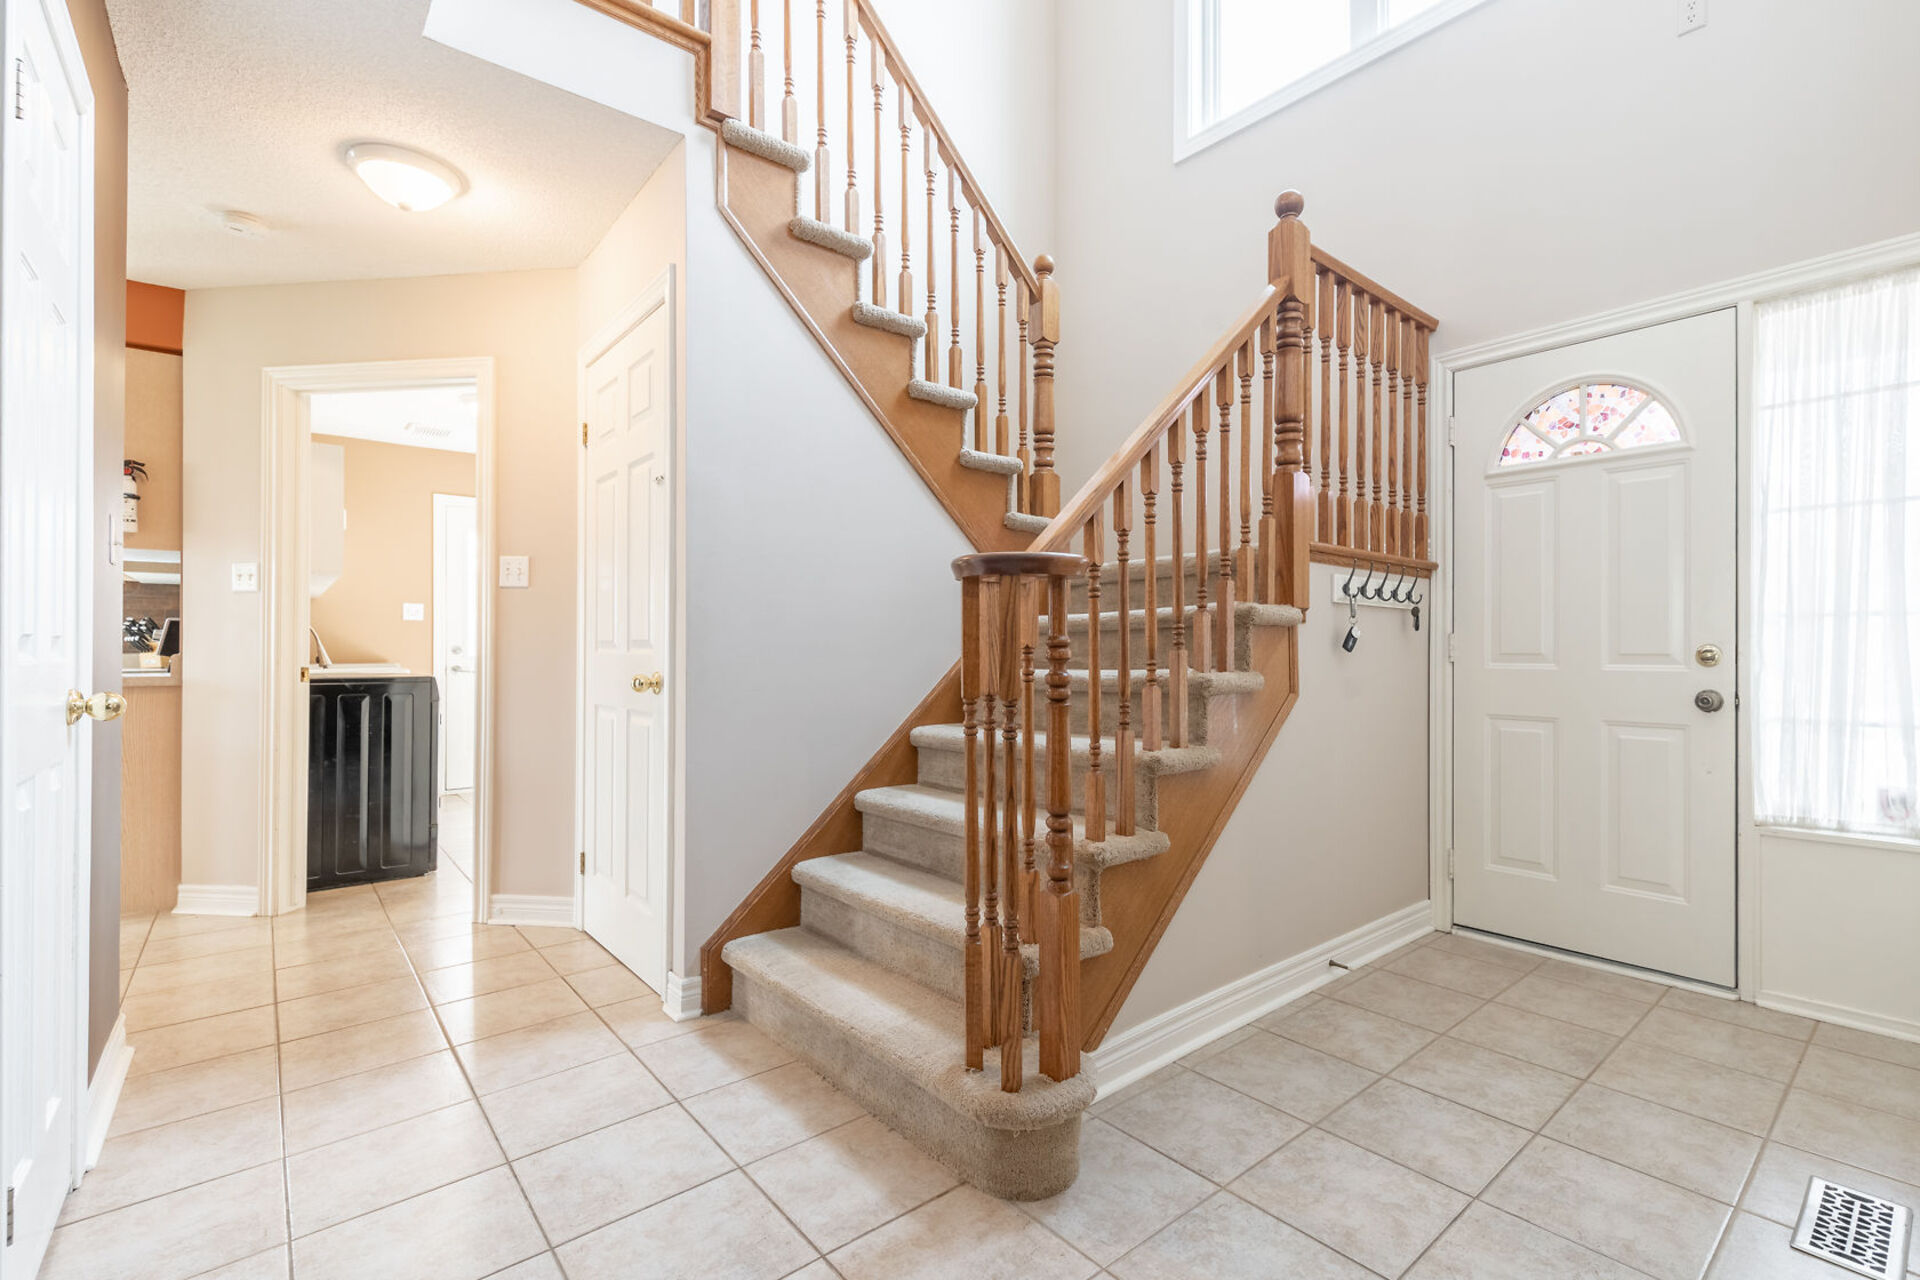 virtual-tour-302461-25 at 47 Chianti Cres, Stoney Creek, Hamilton